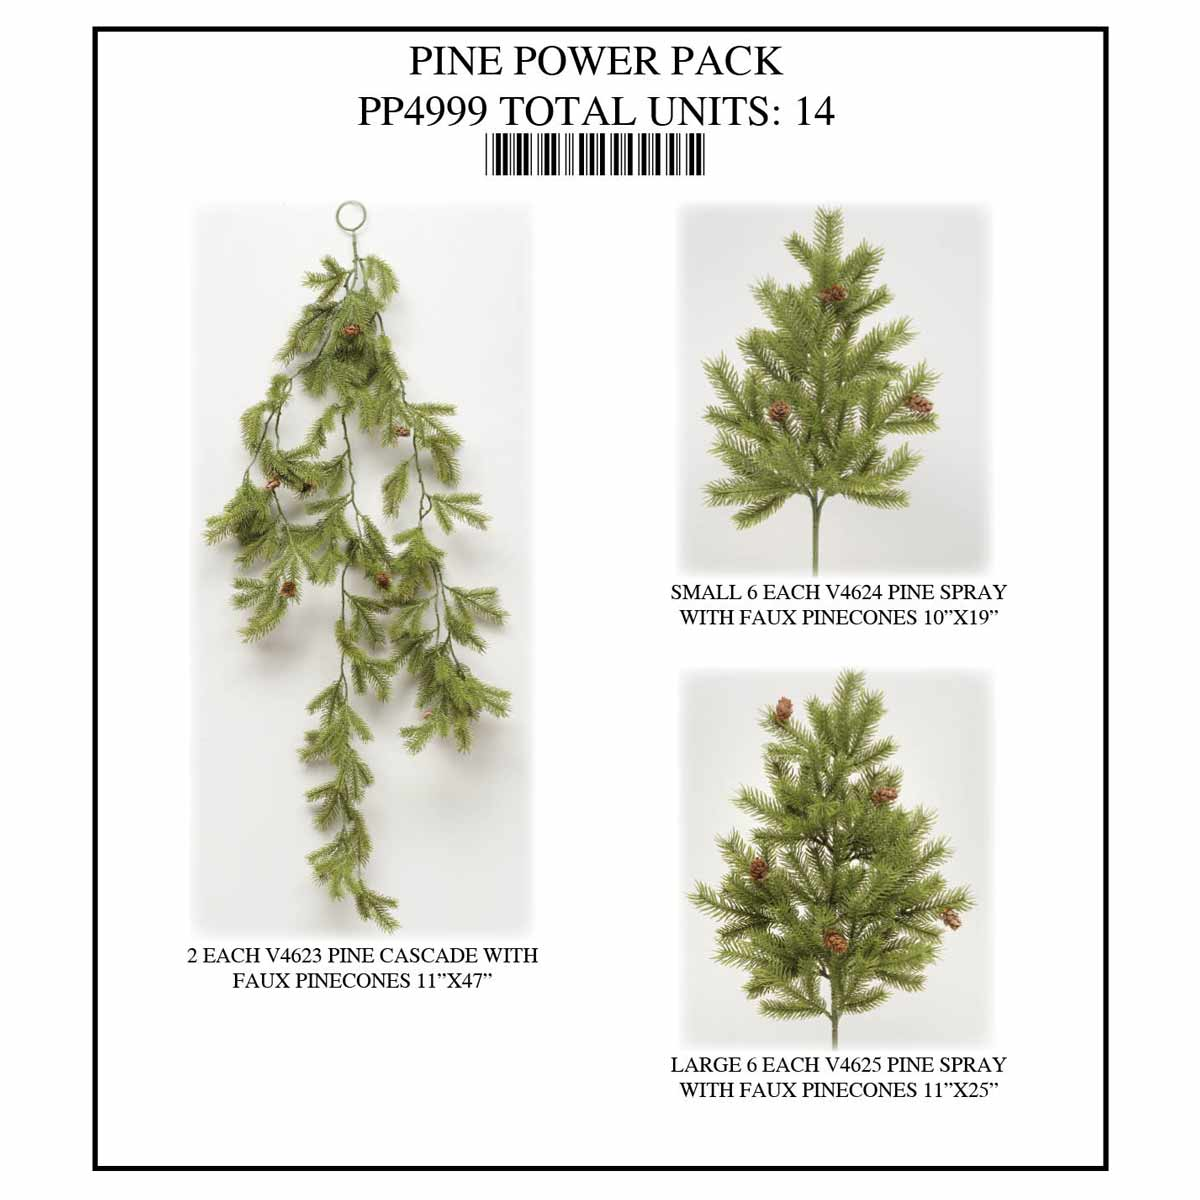 PINE CASCADE POWER PACK 14 UNITS